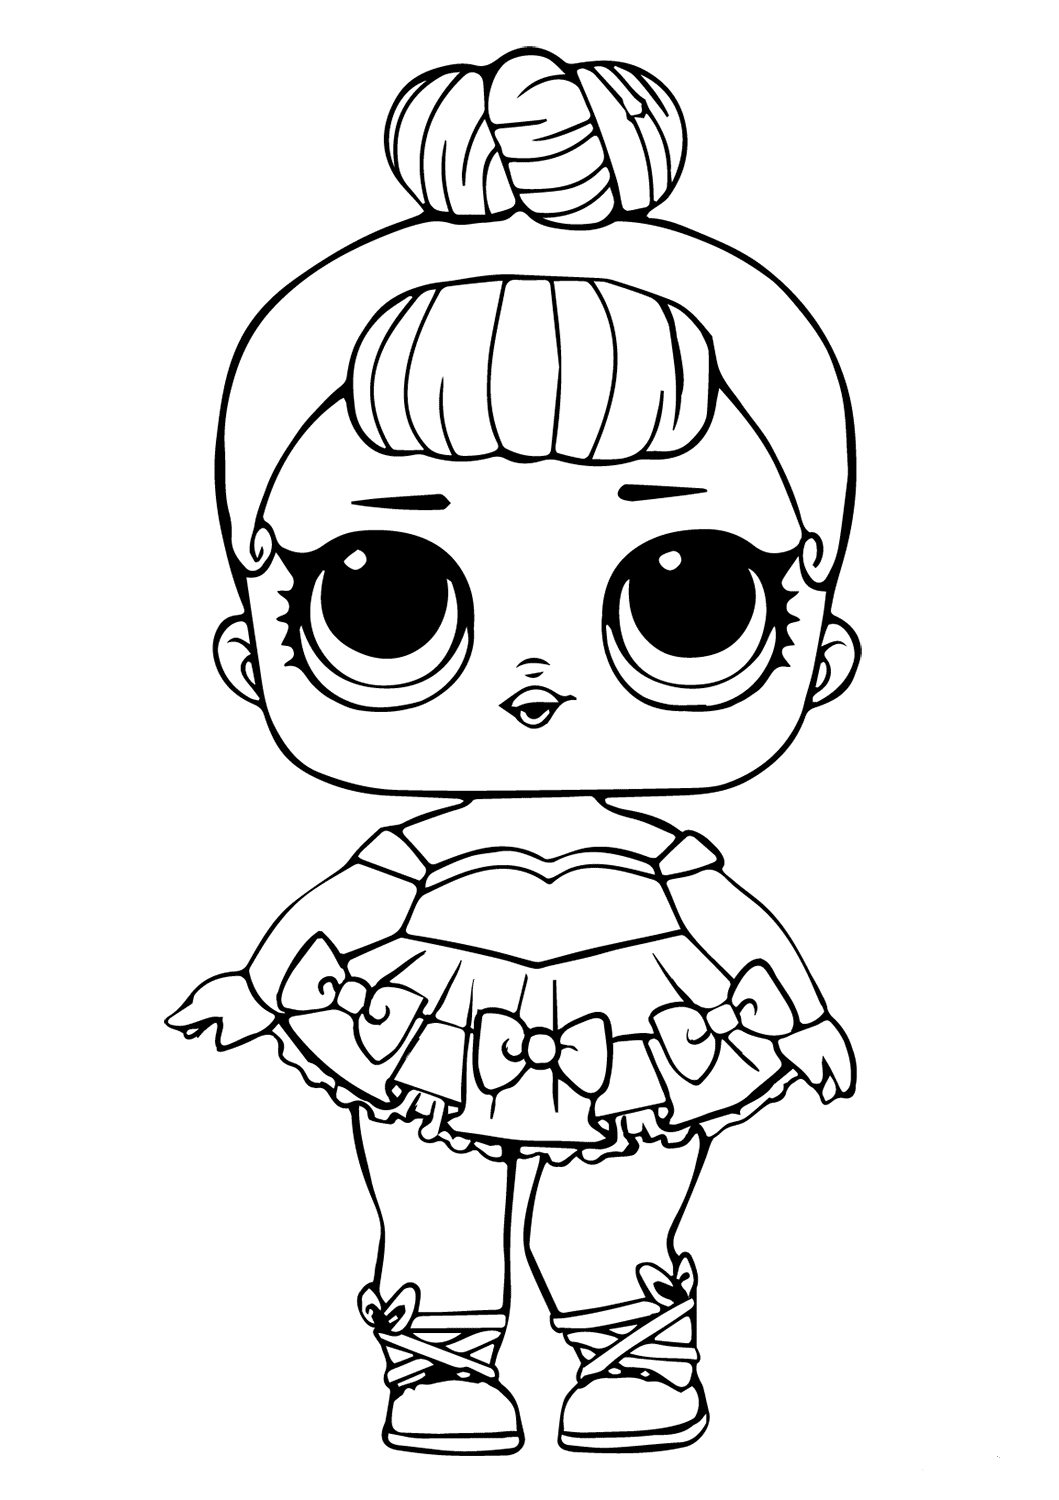 coloring sheets lol lol surprise dolls coloring pages print them for free coloring lol sheets